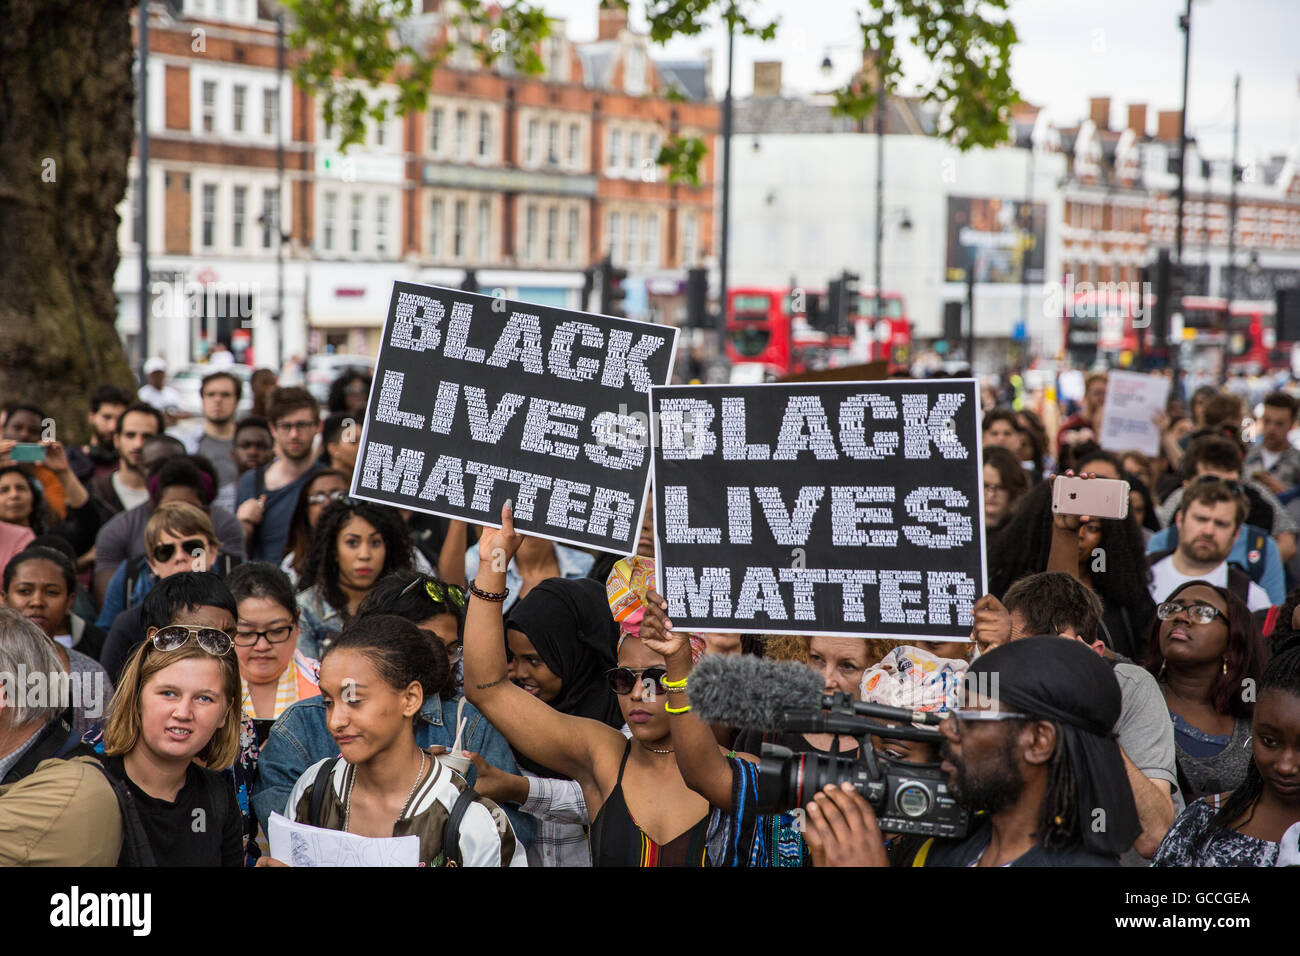 London, UK. 9th July, 2016. Campaigners hold Black Lives Matter signs at a rally in Brixton in solidarity with Alton - Stock Image